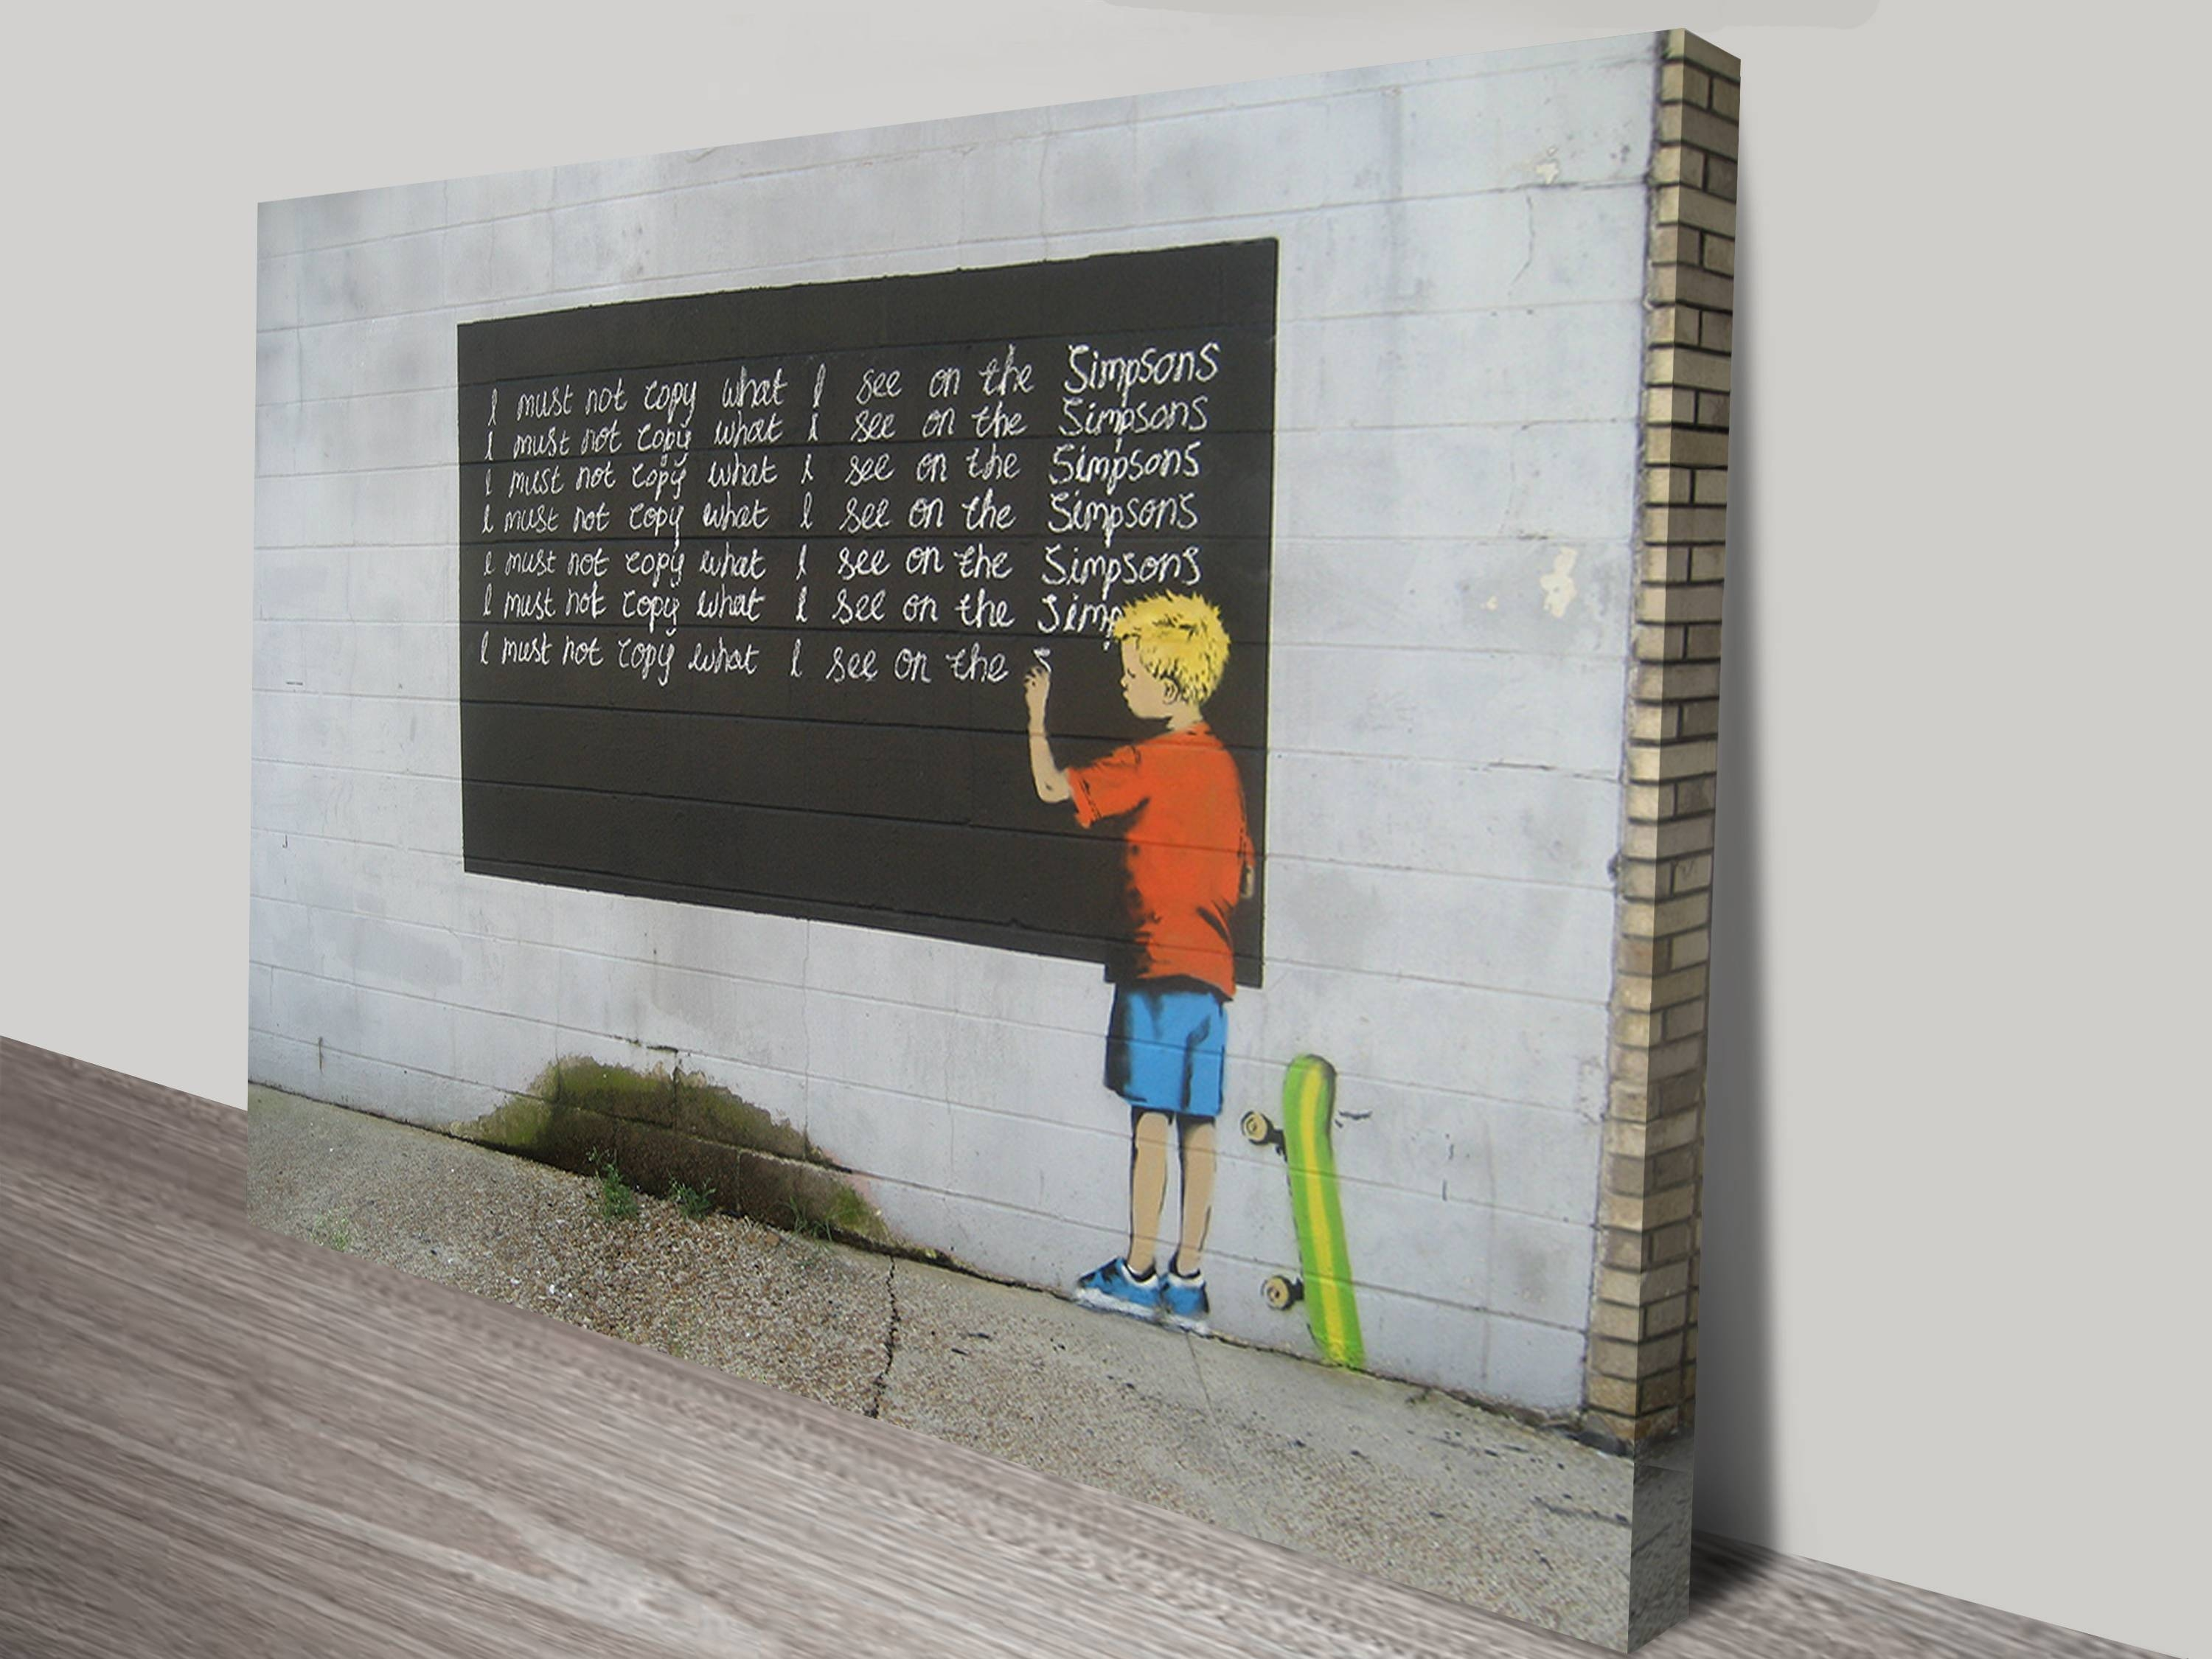 Simpsons Canvas Art Print Sydney Within Latest Banksy Wall Art Canvas (View 19 of 20)